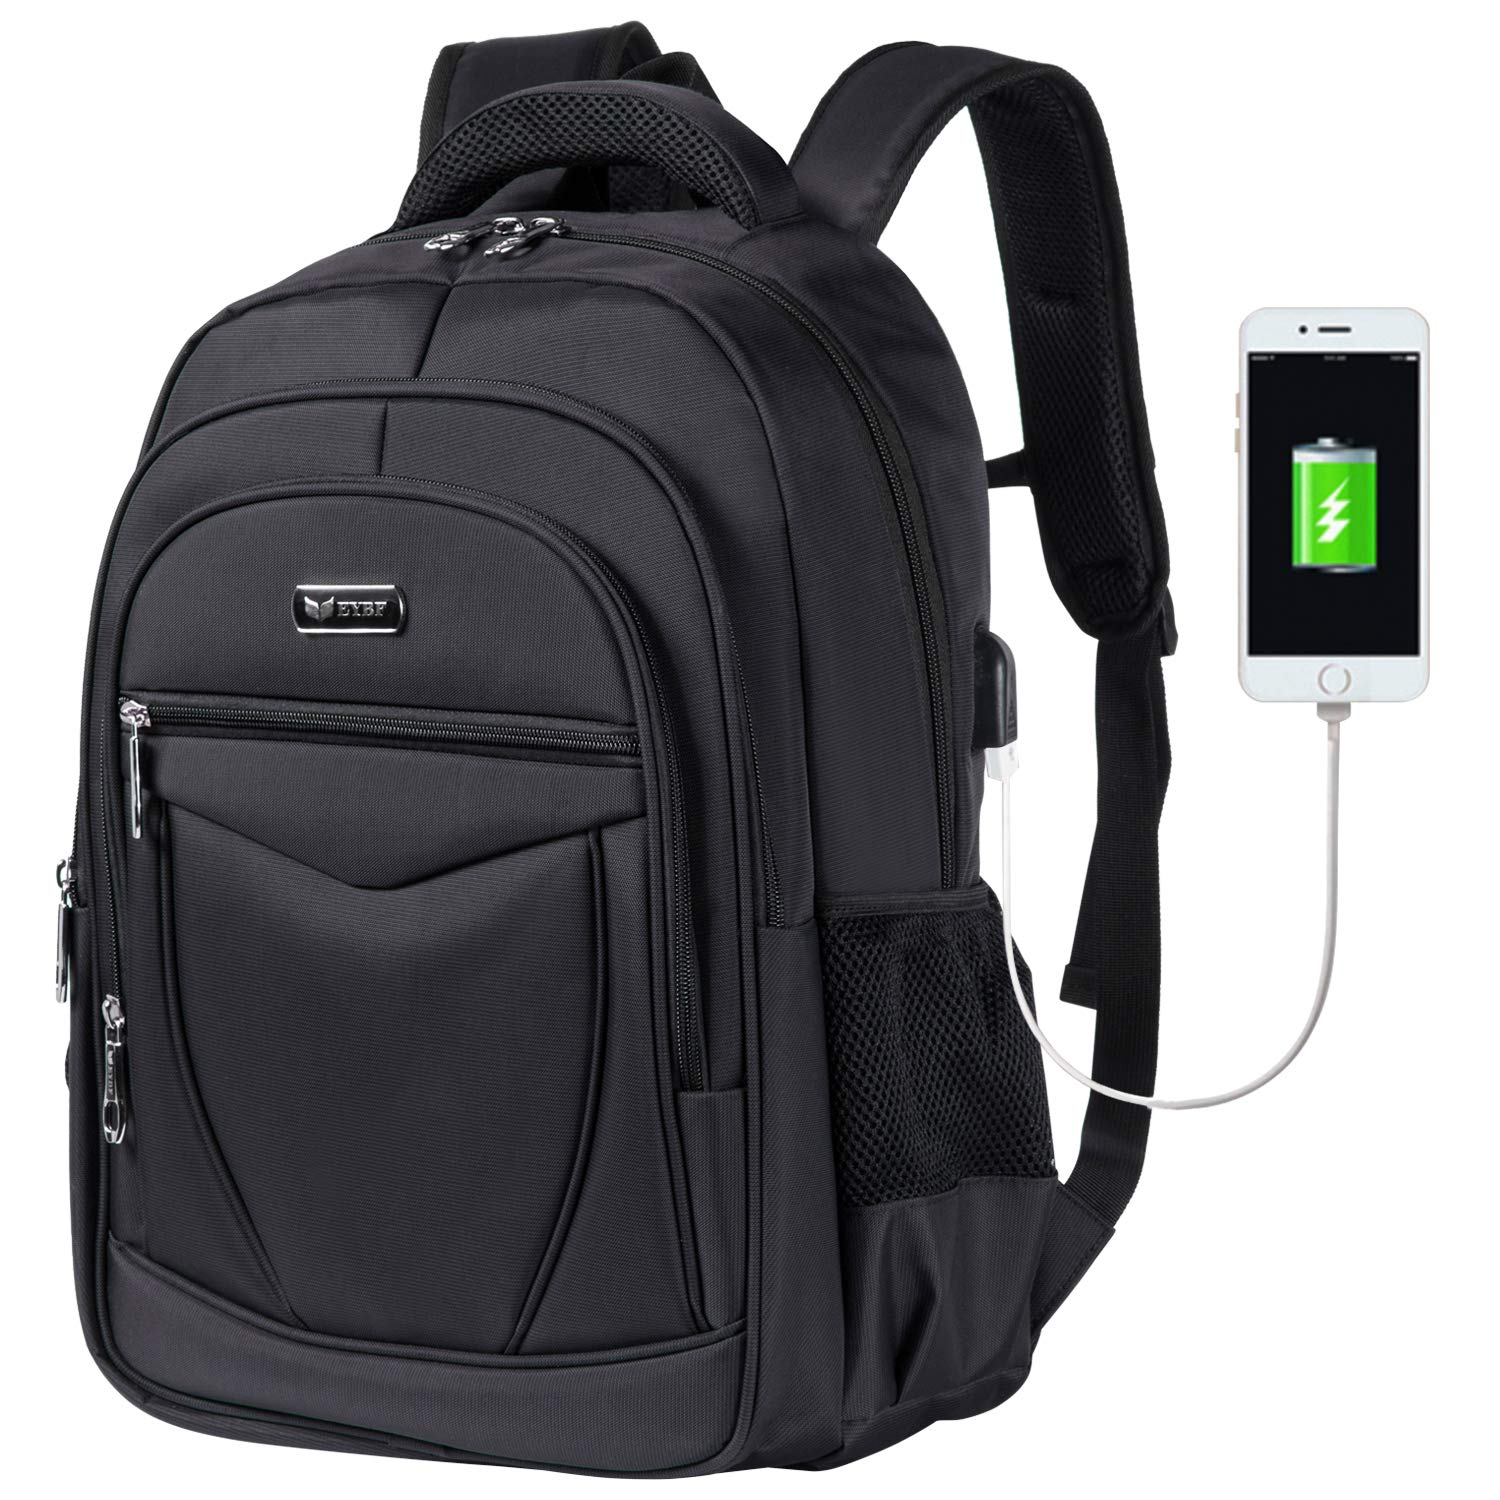 Laptop Backpack, Business Travel Laptop Backpack with USB Charging Port for Men Women Boys Students, Water-Repellent College School Bookbag Computer Backpack Fits 15.6 inch Laptop & Notebook - Black